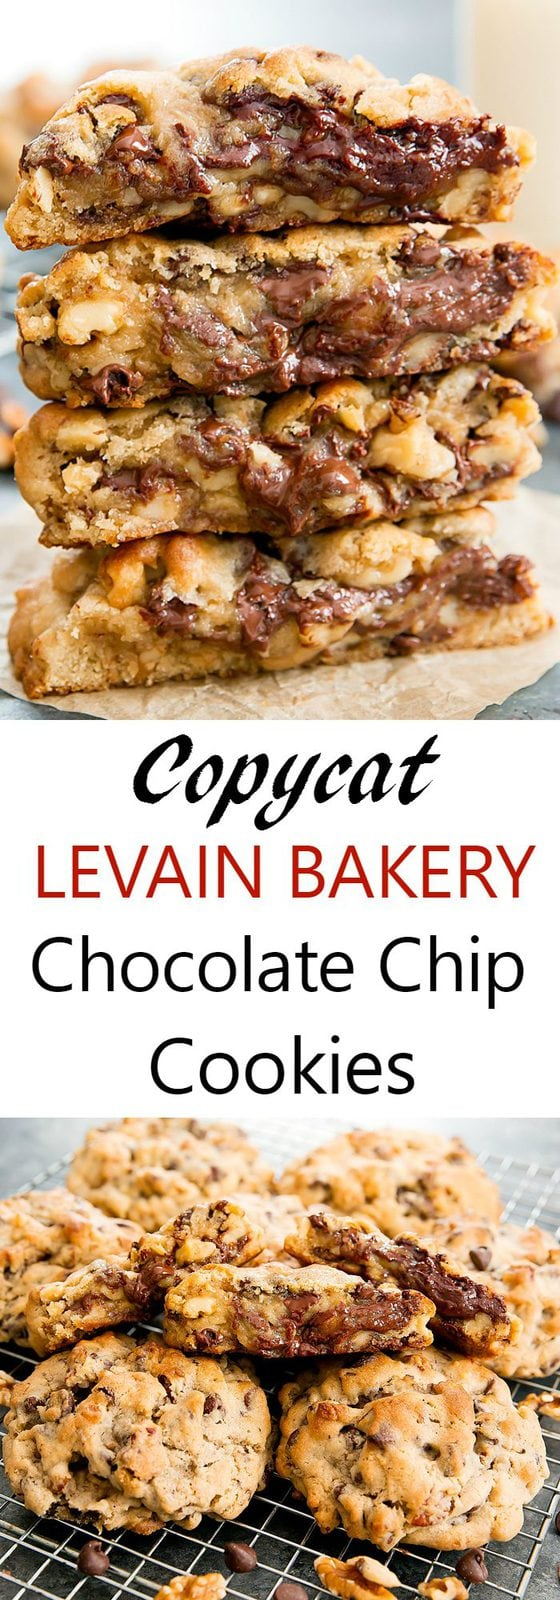 Levain Bakery Chocolate Chip Cookies Kirbie S Cravings